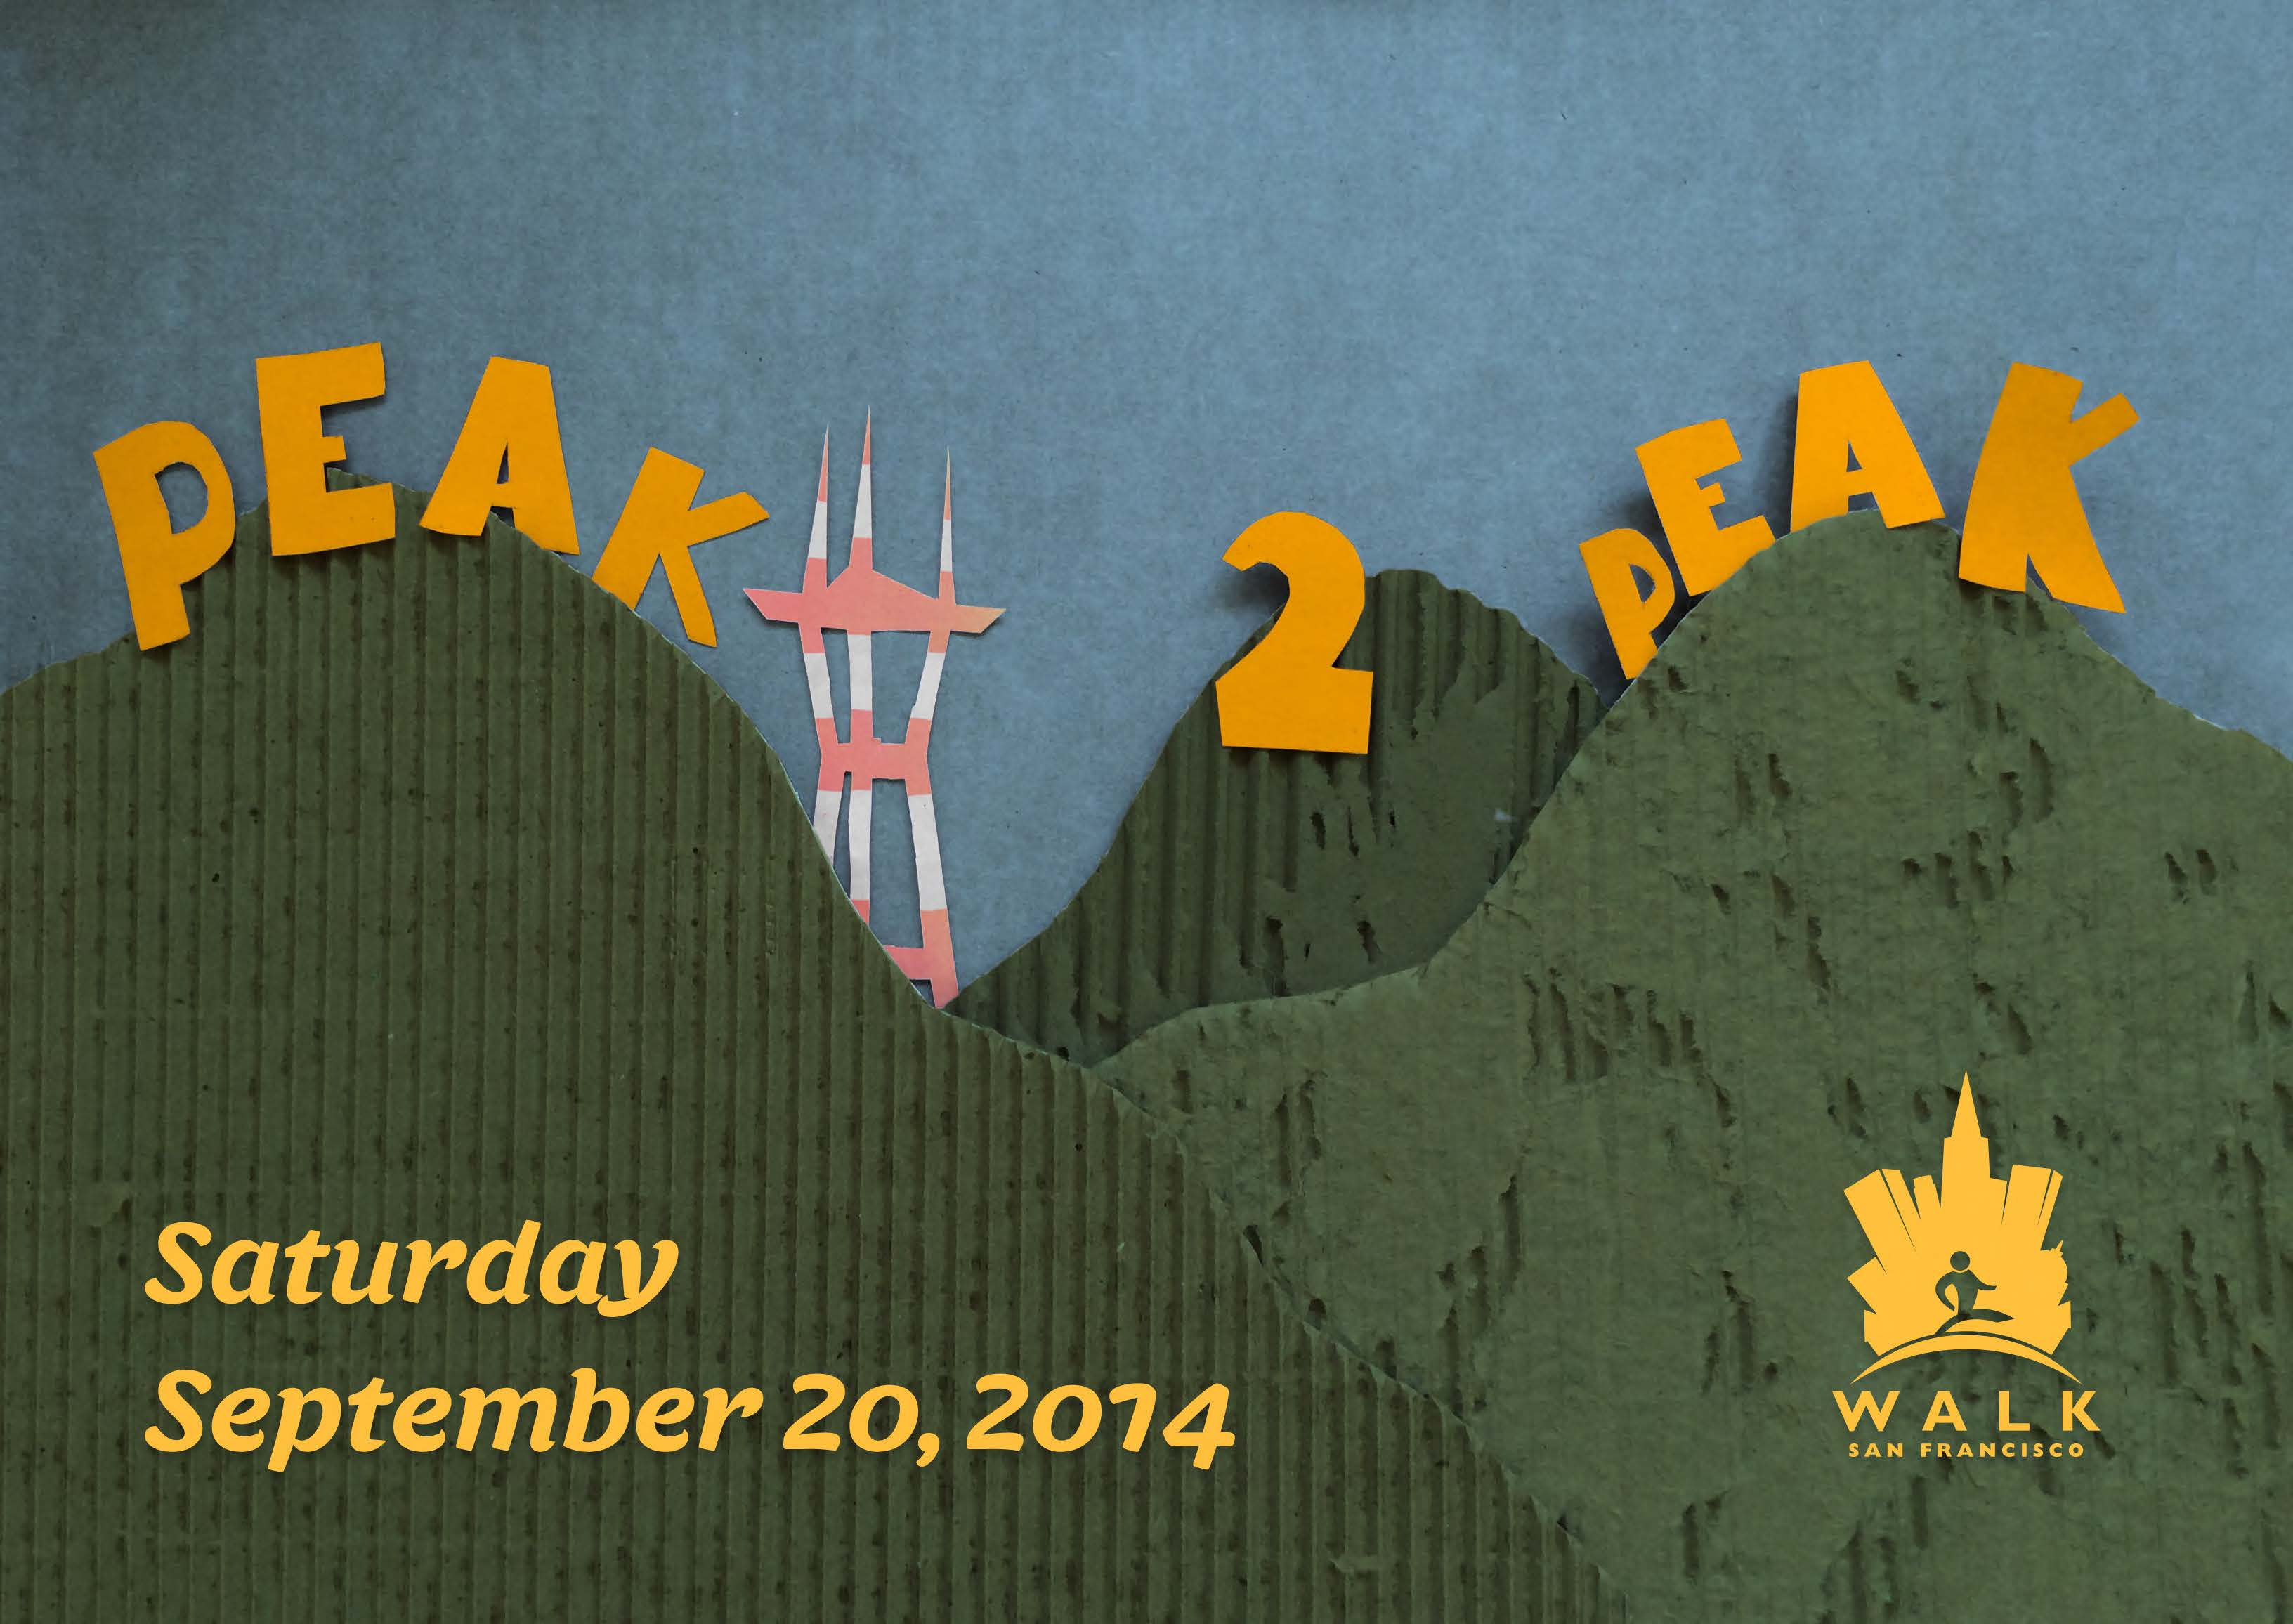 Peak2Peak 2014 Art by Abe Bingham